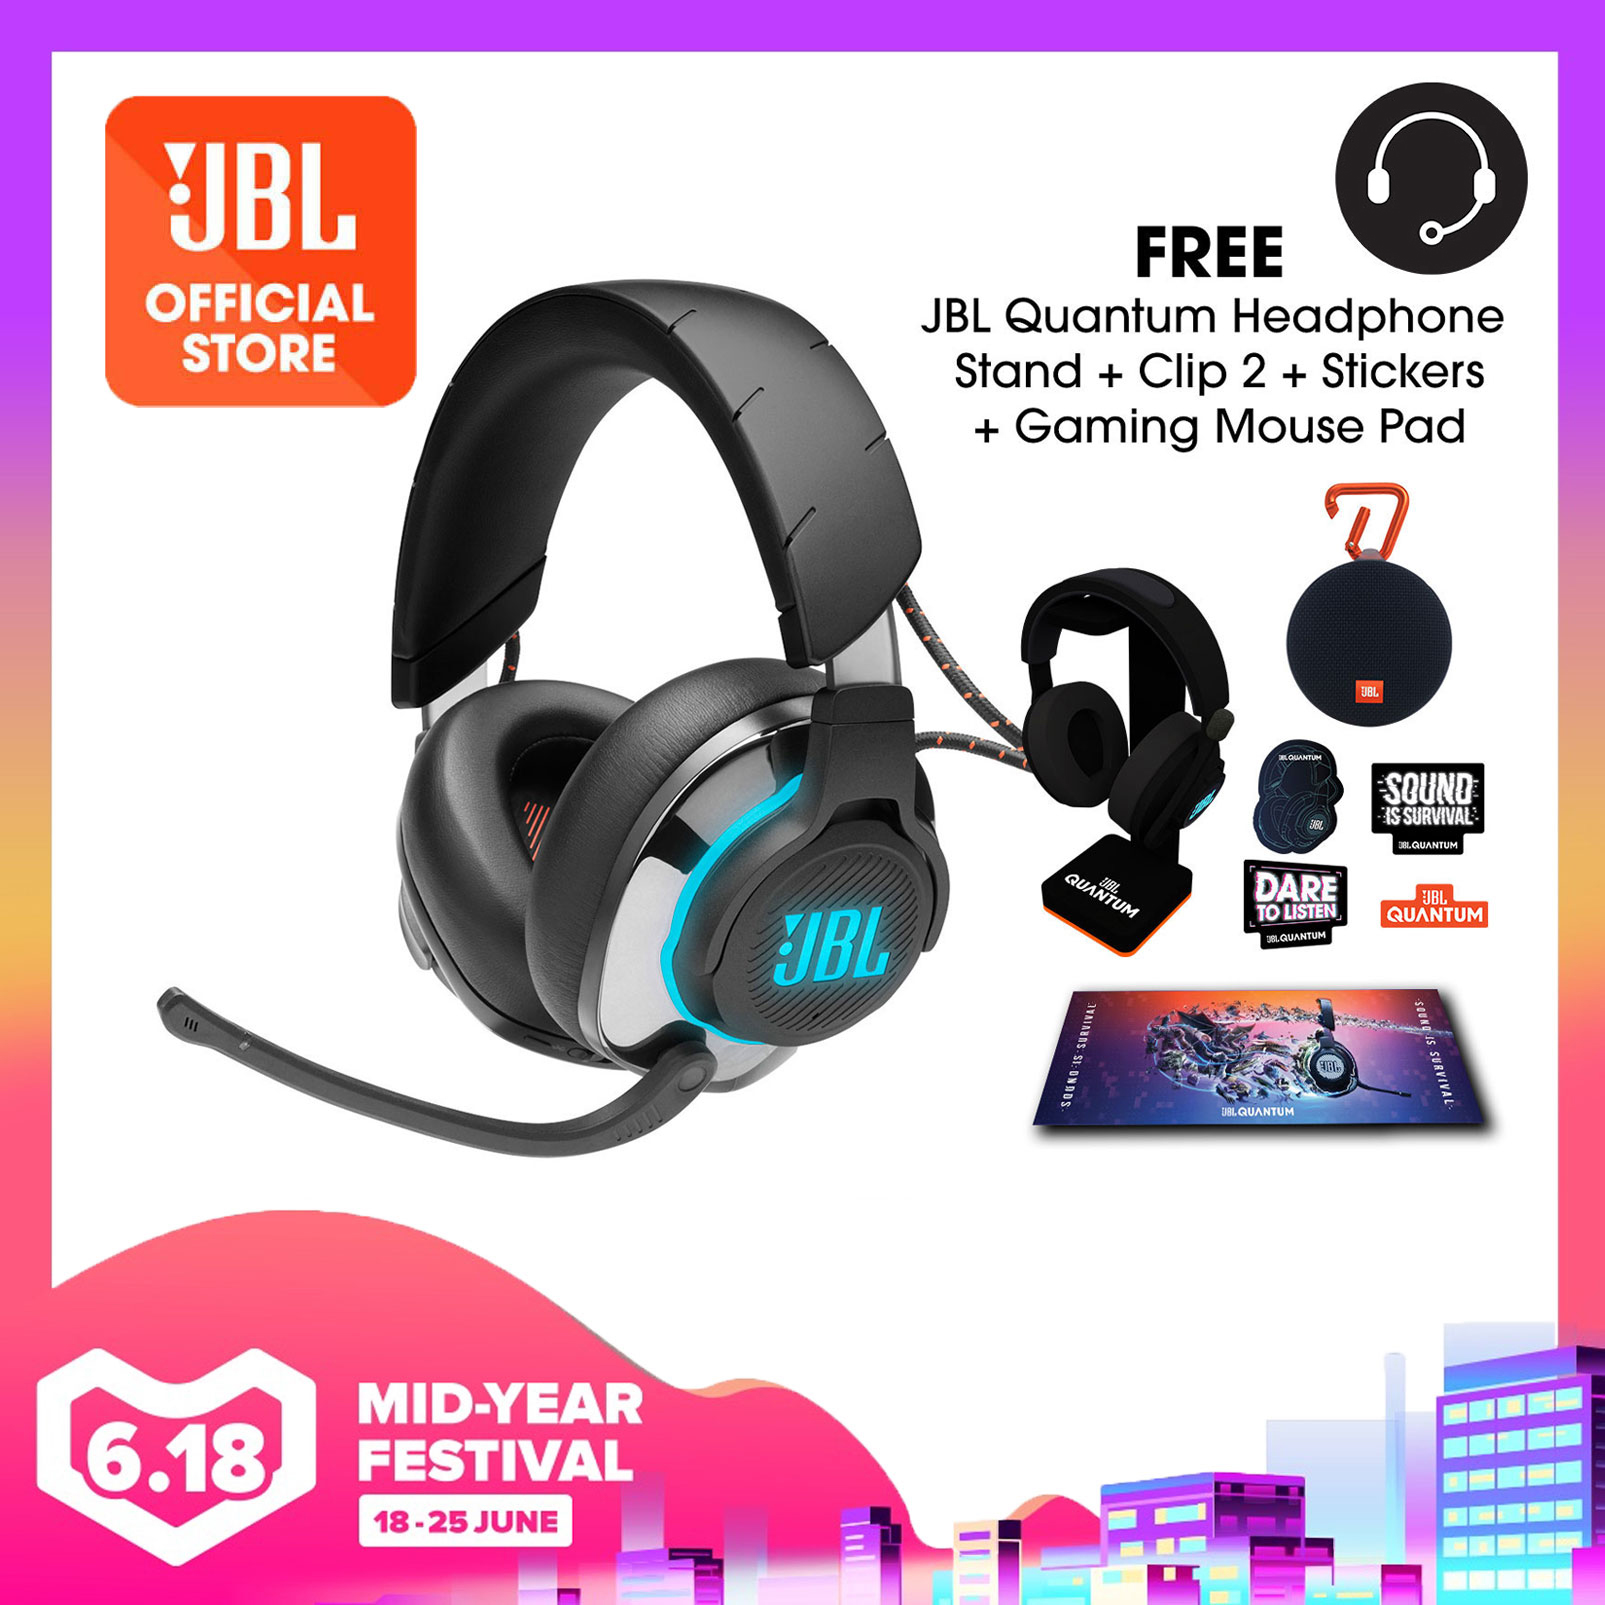 JBL Quantum 800 Wireless over-ear performance gaming headset with Active Noise Cancelling and Bluetooth 5.0 Bundle (Quantum Headphone Stand + Gaming Mouse Pad + Stickers + JBL Clip 2) | Why Not Deals